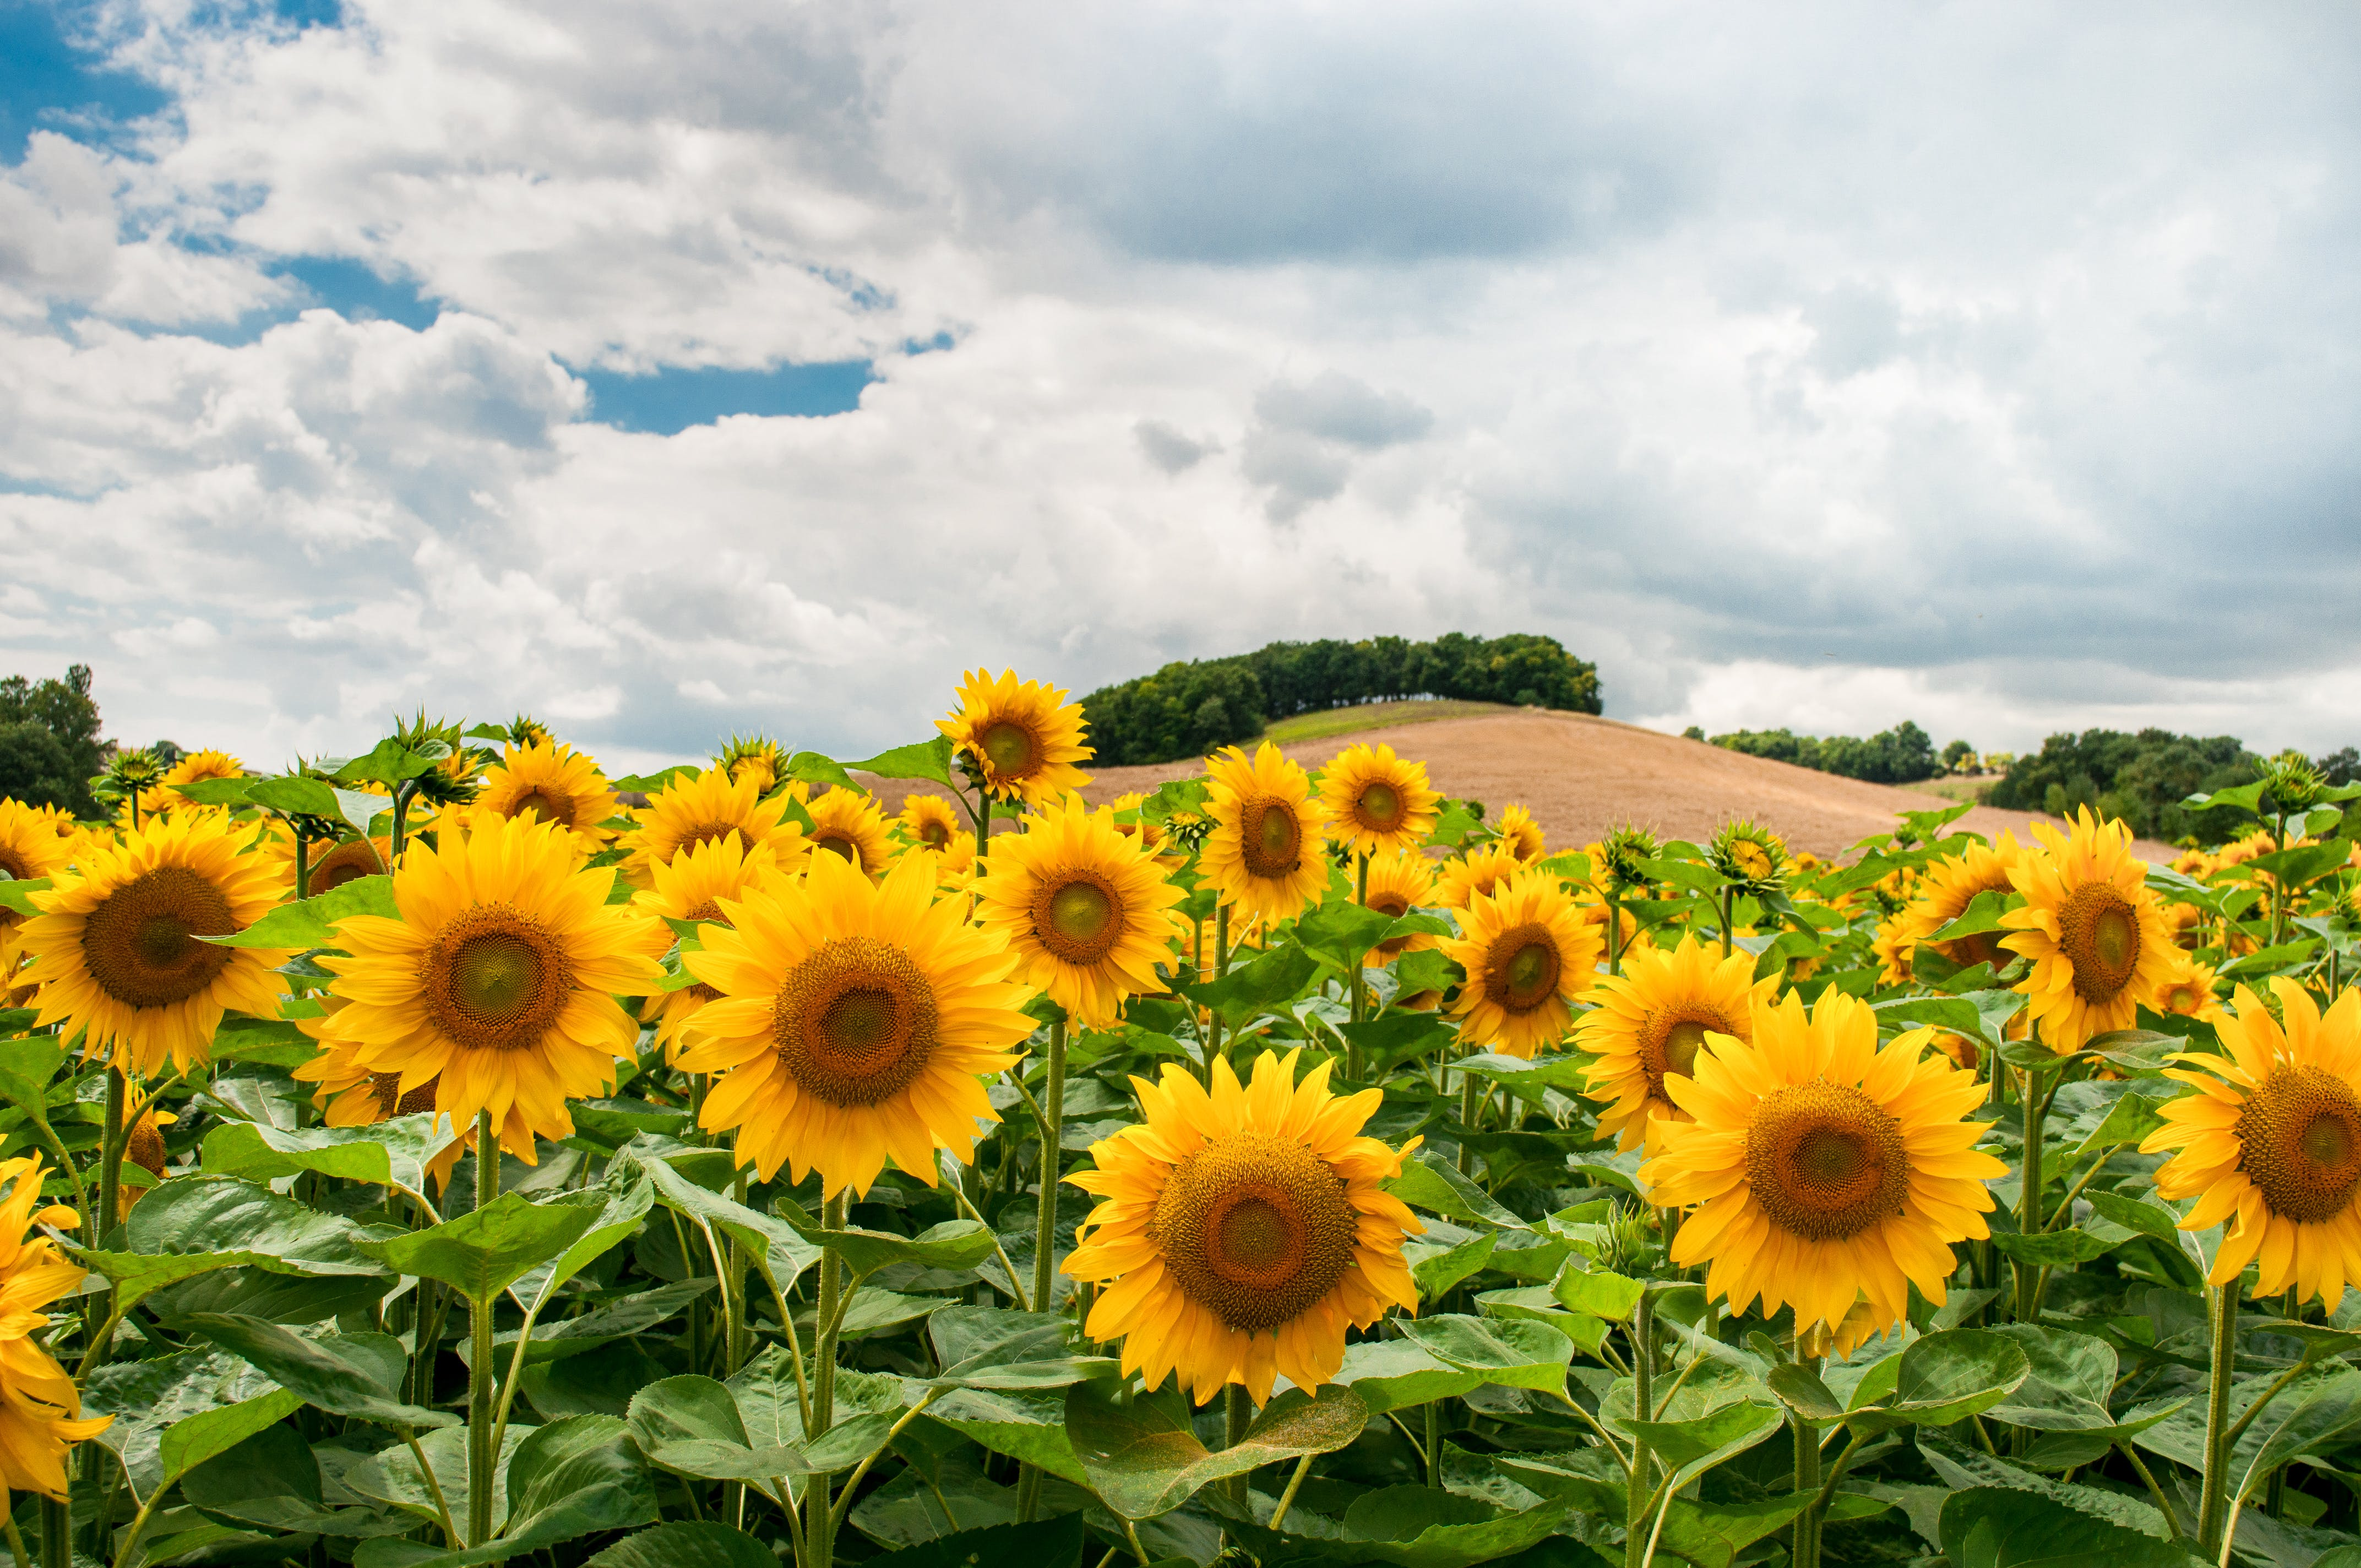 Sunflower Field during Day